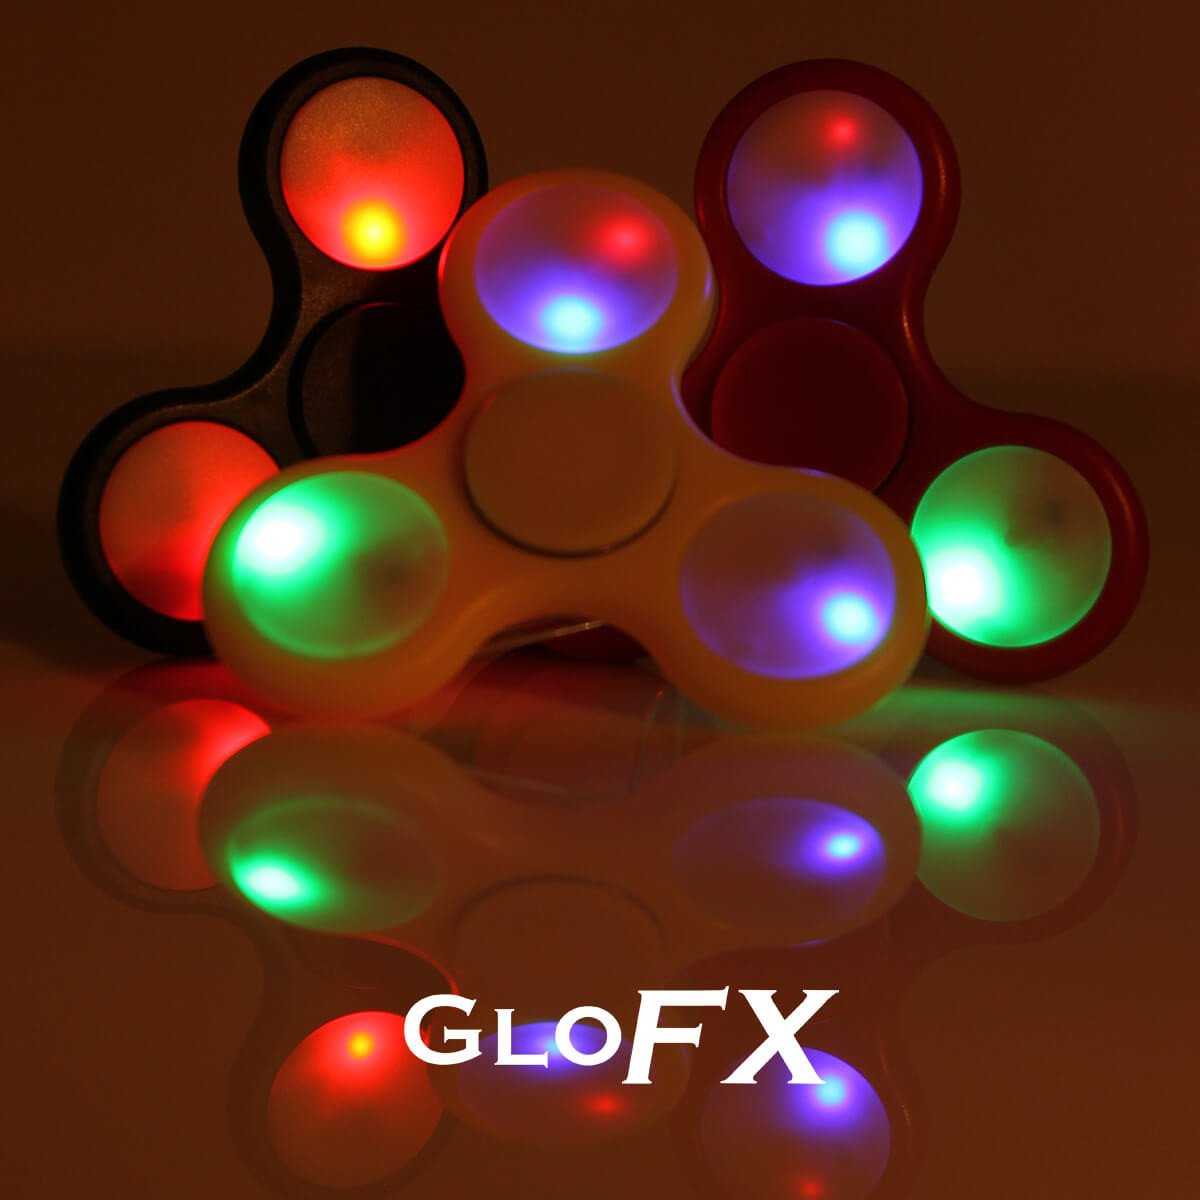 GloFX LED Light Up Fidget Spinner